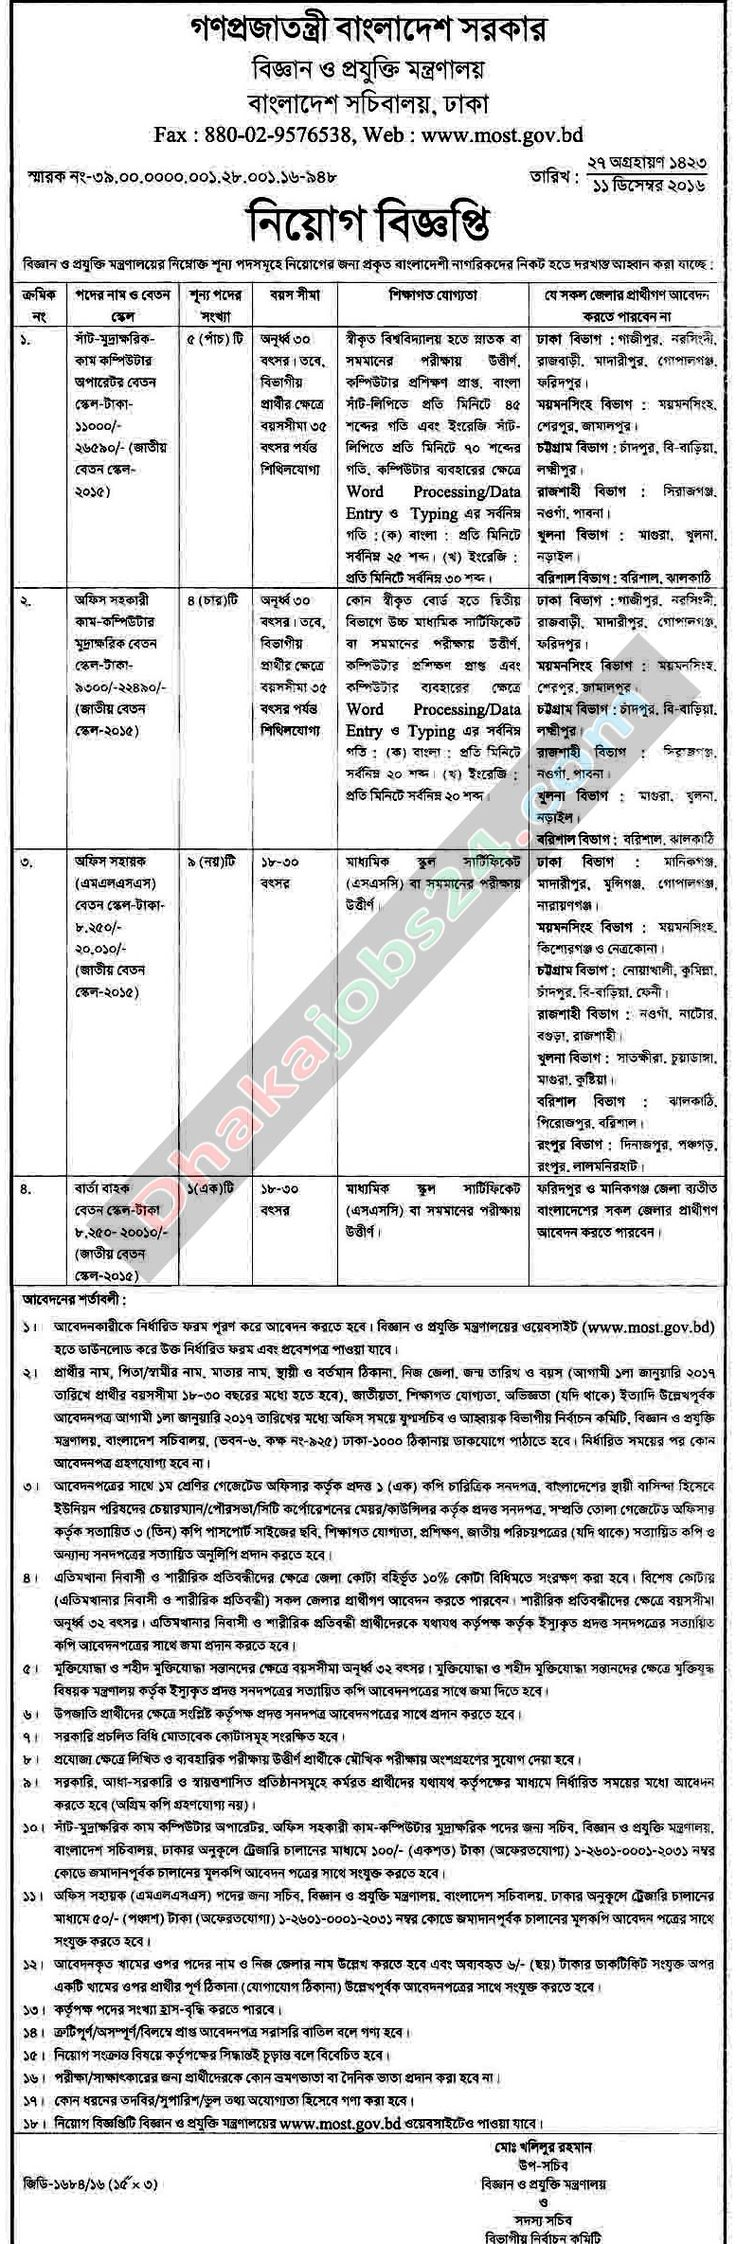 Science and Technology Ministry Job Circular 2017